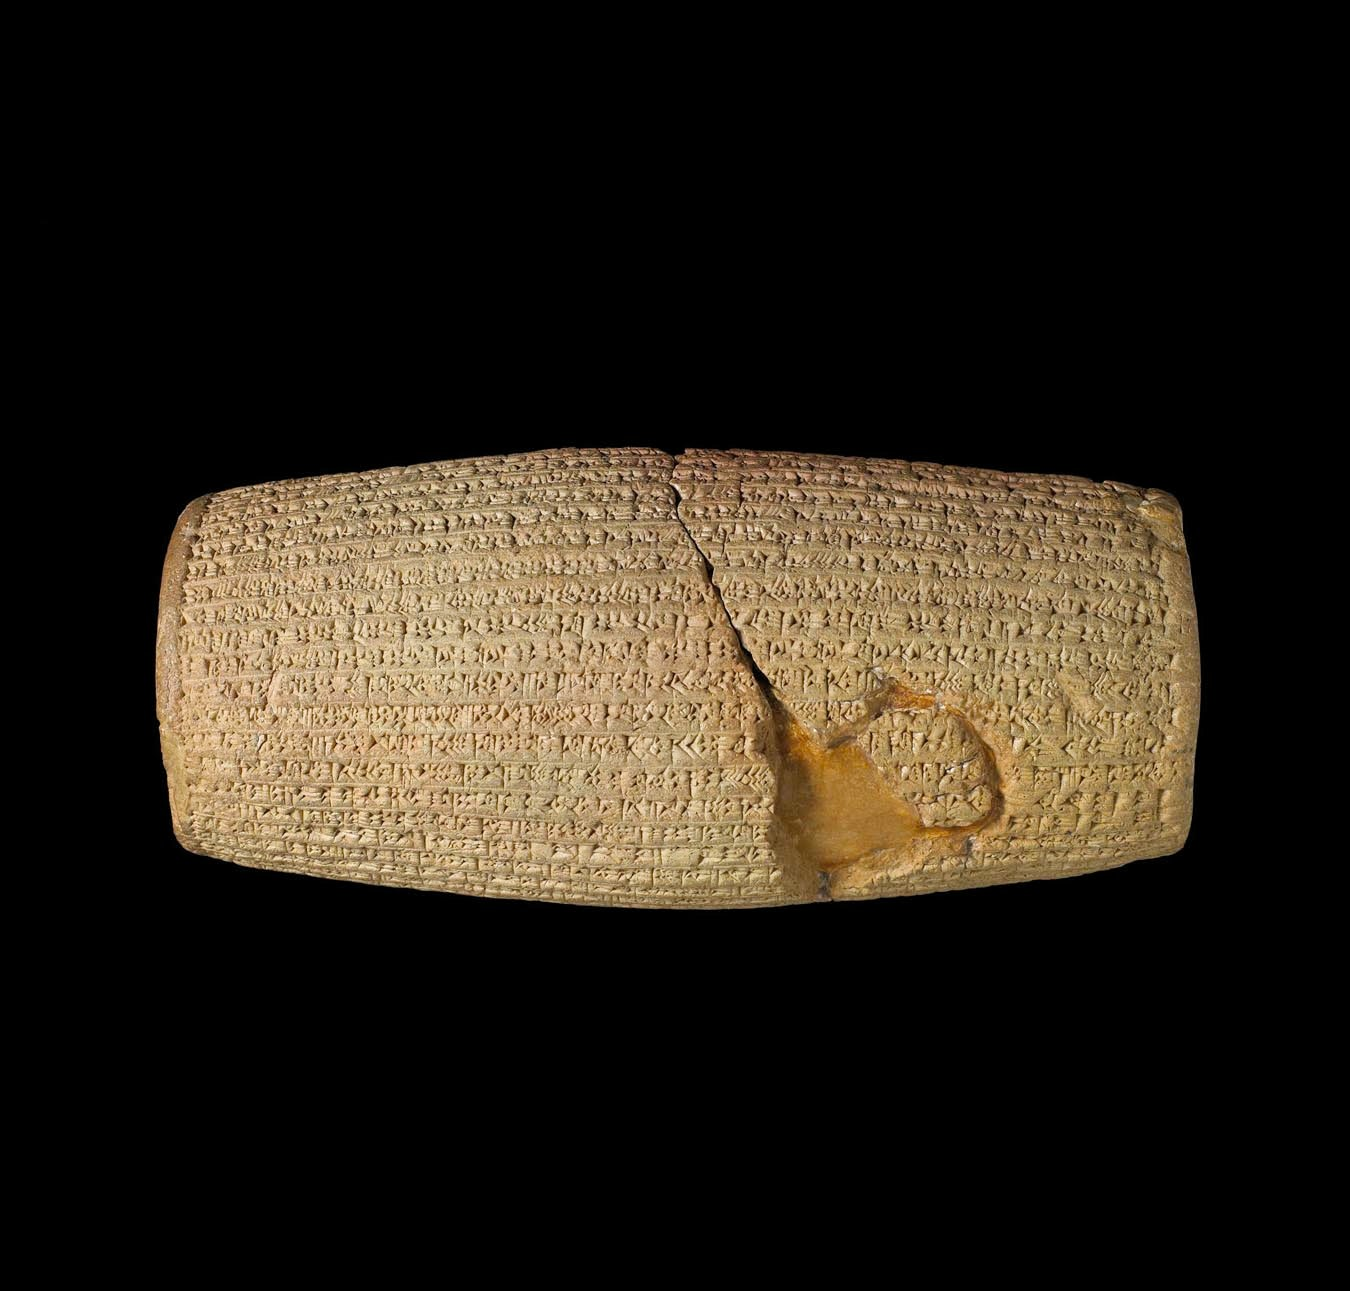 Achaemenid- The Cyrus Cylinder